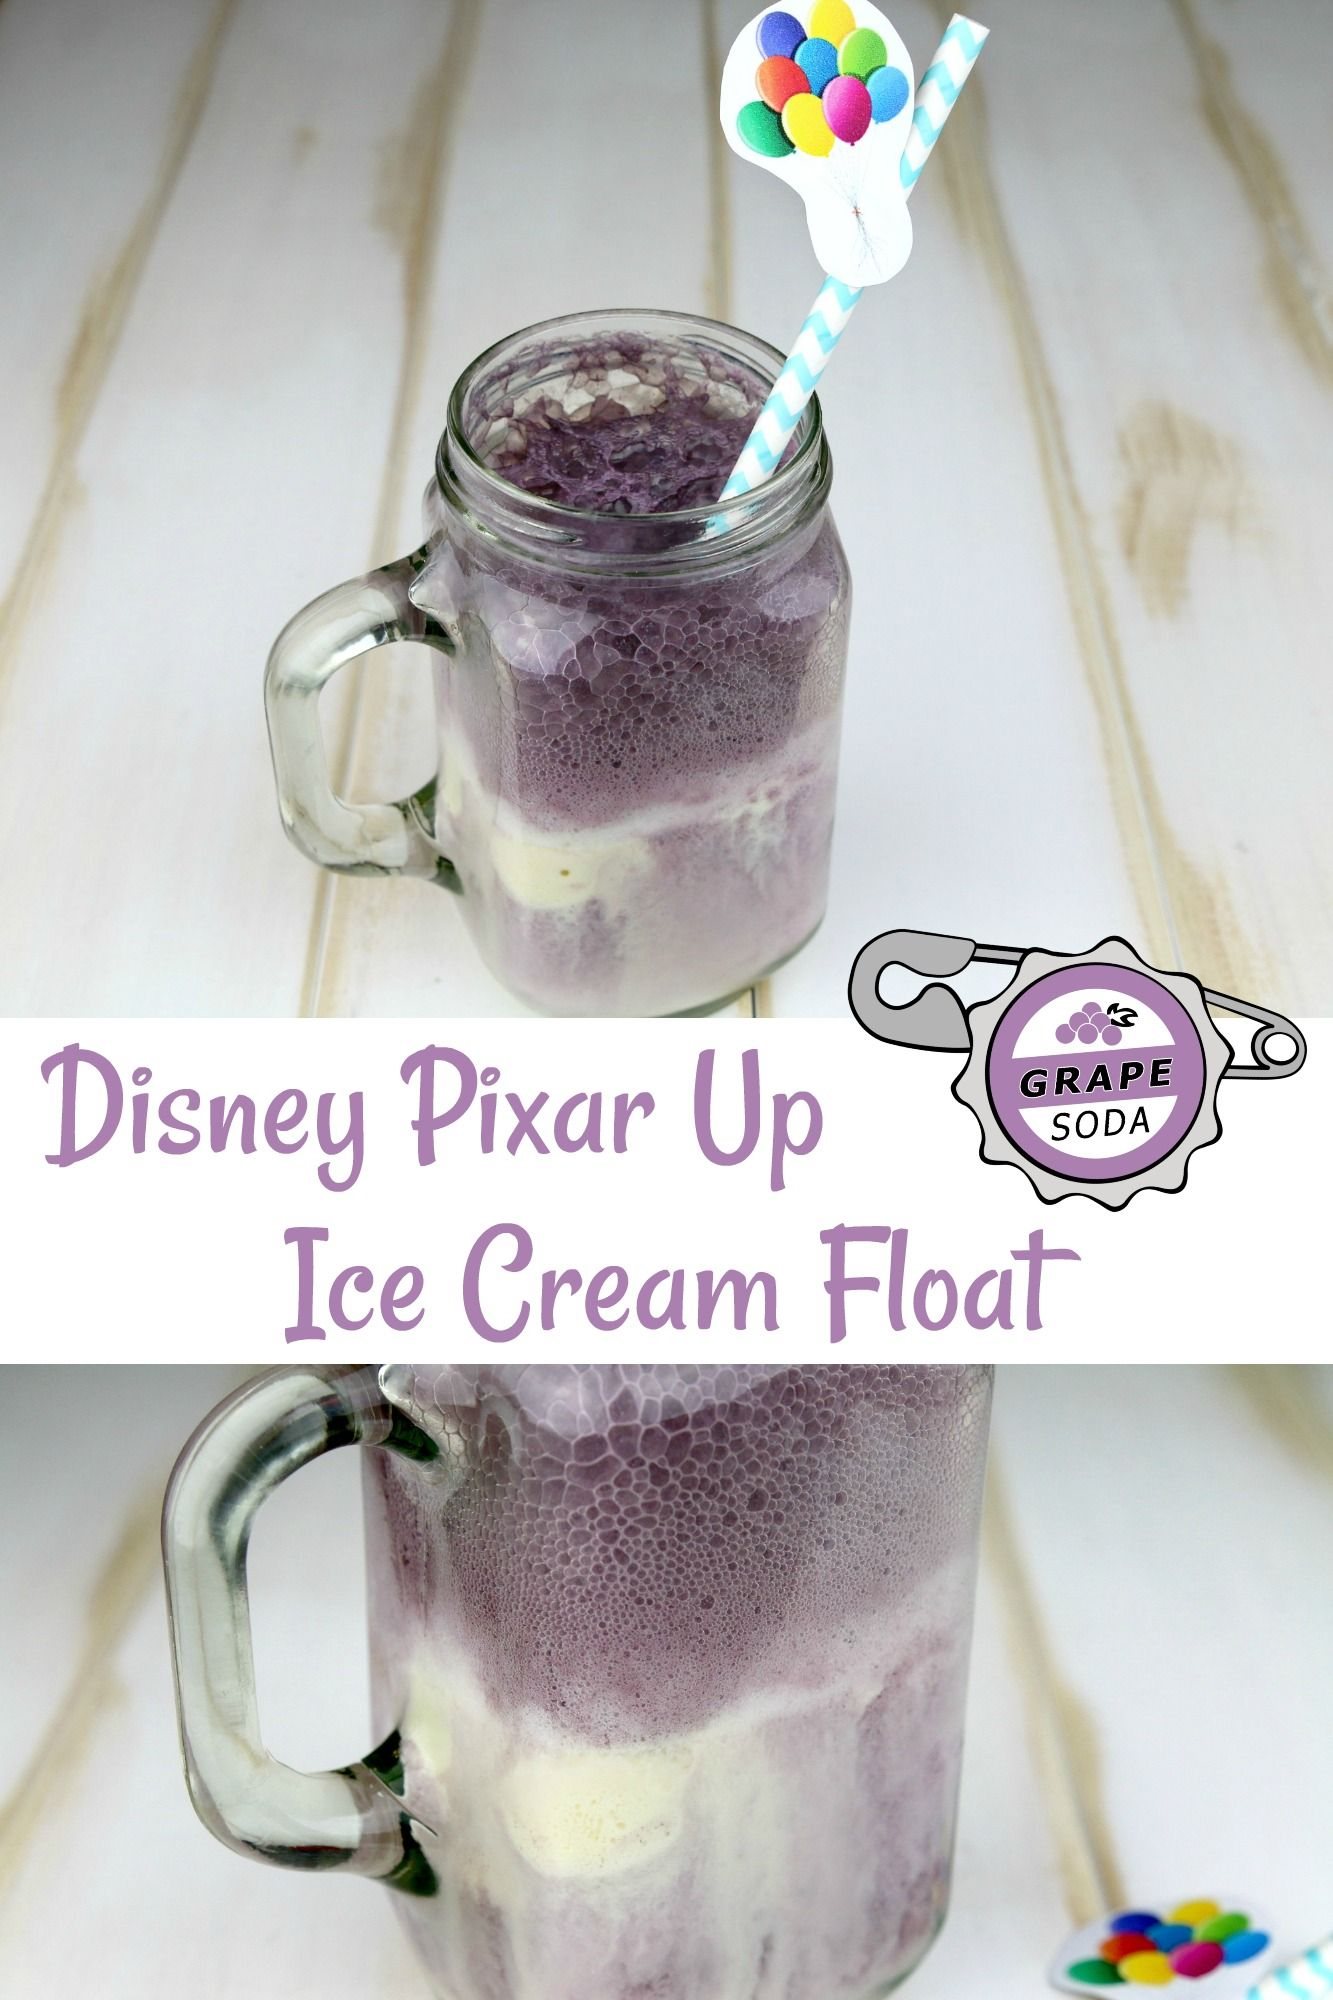 Disney Pixar Up Grape Soda Float - #PixarFest - Life. Family. Joy